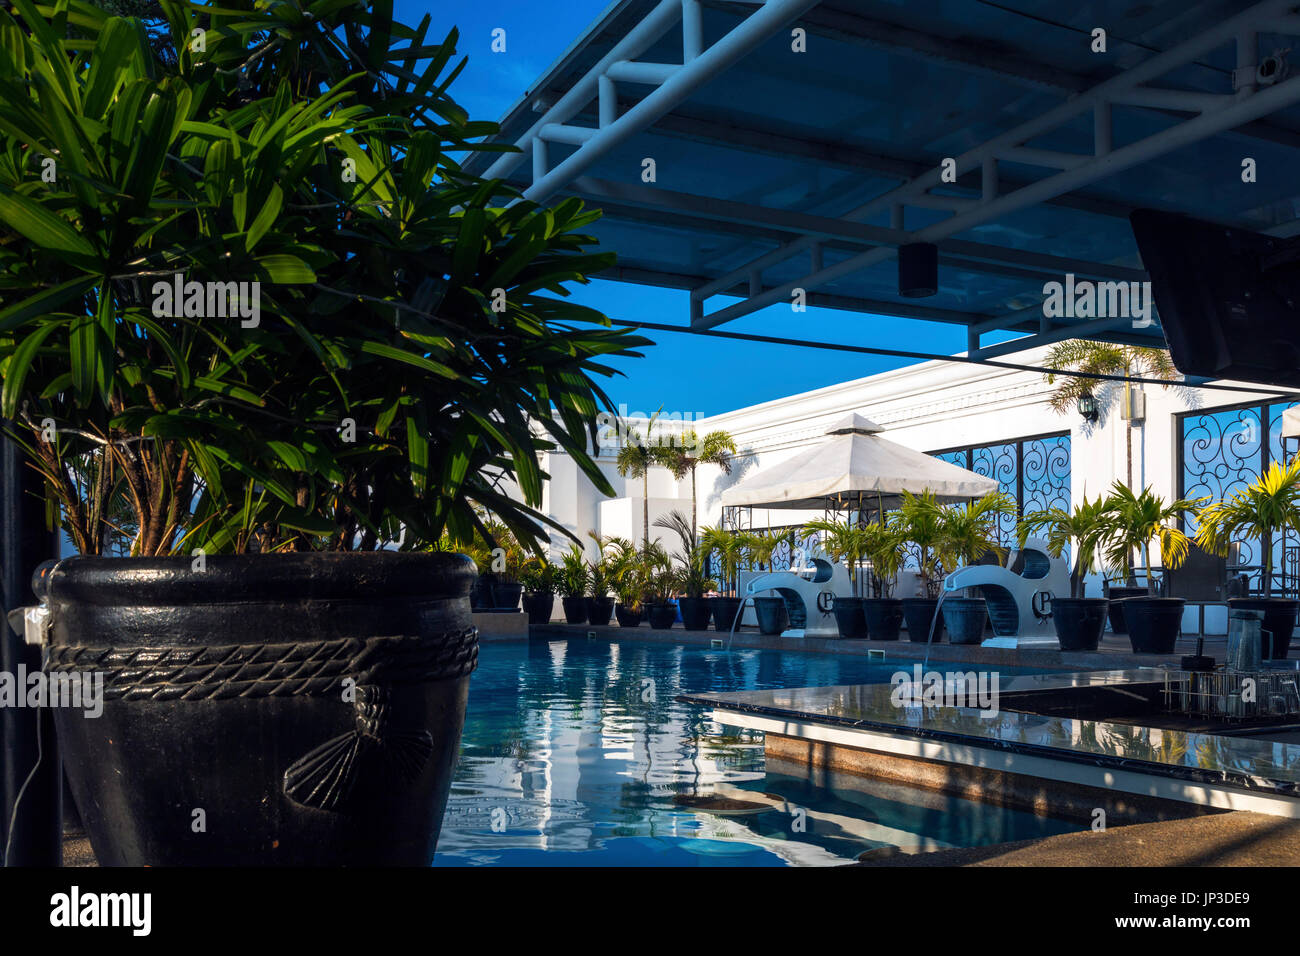 Hotel Rooftop Stock Photos Hotel Rooftop Stock Images Alamy